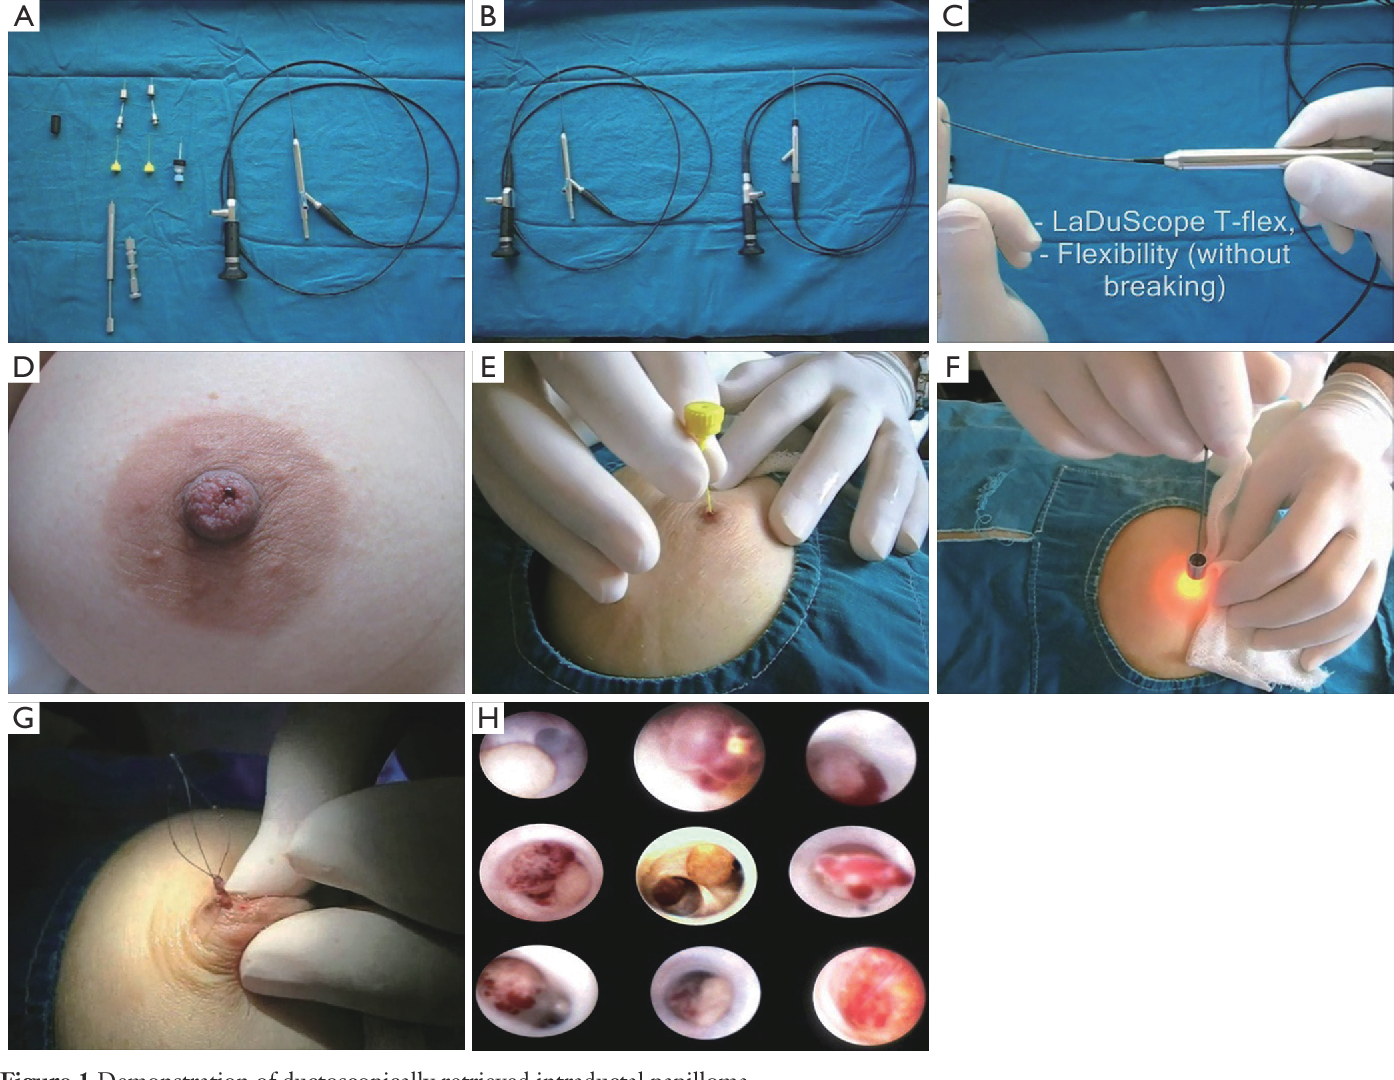 treatment of papilloma helminth infection classification